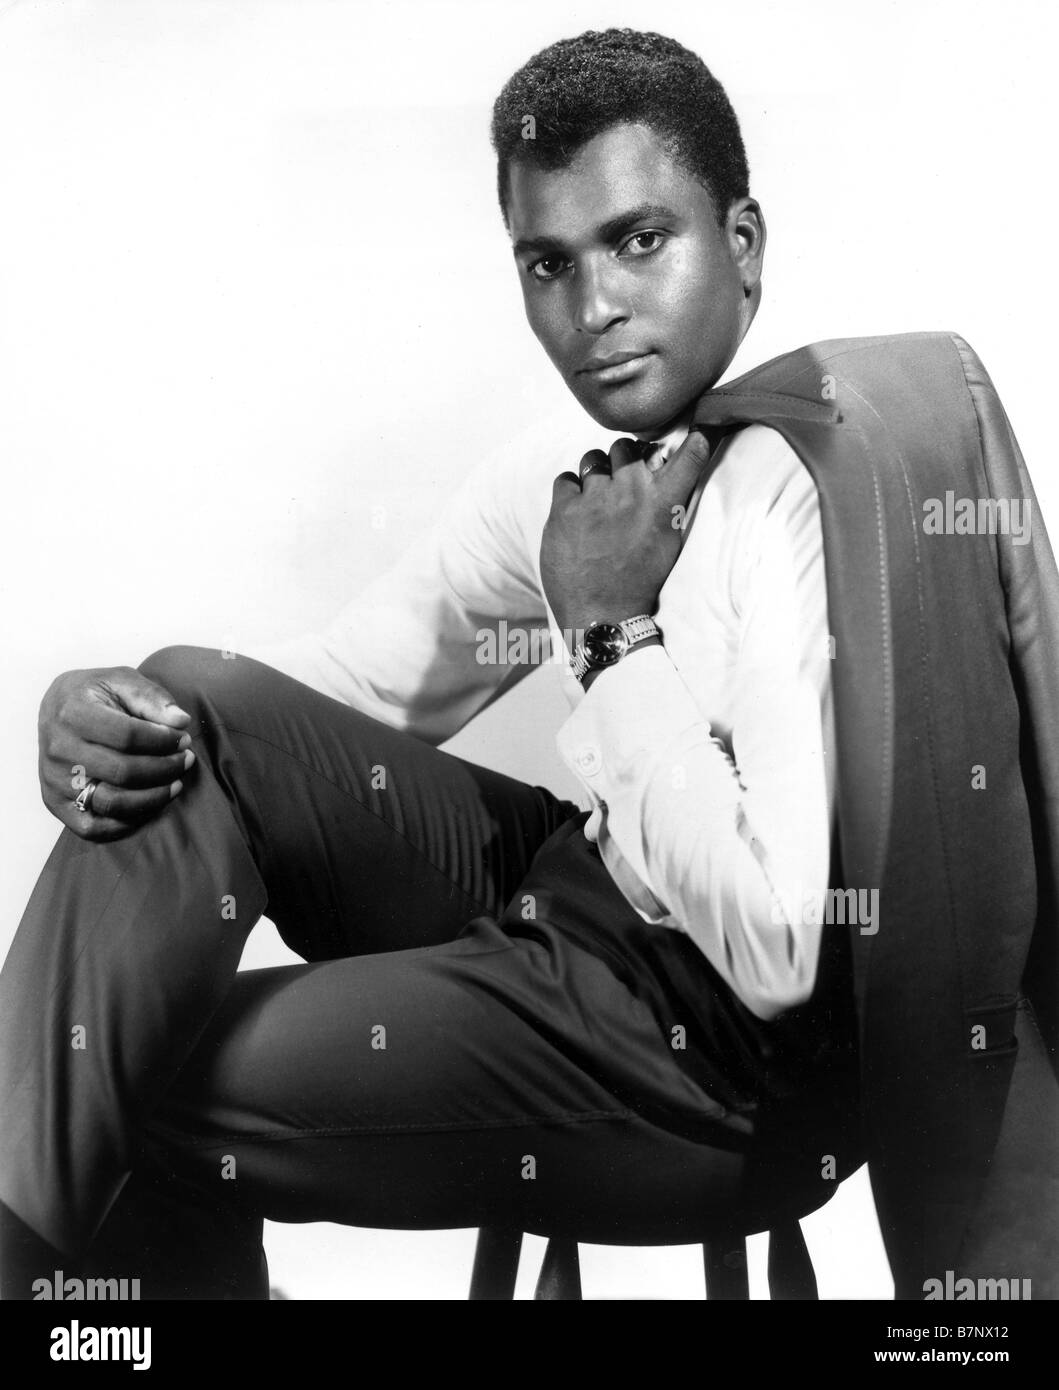 CHARLEY PRIDE US Country Western singer - Stock Image